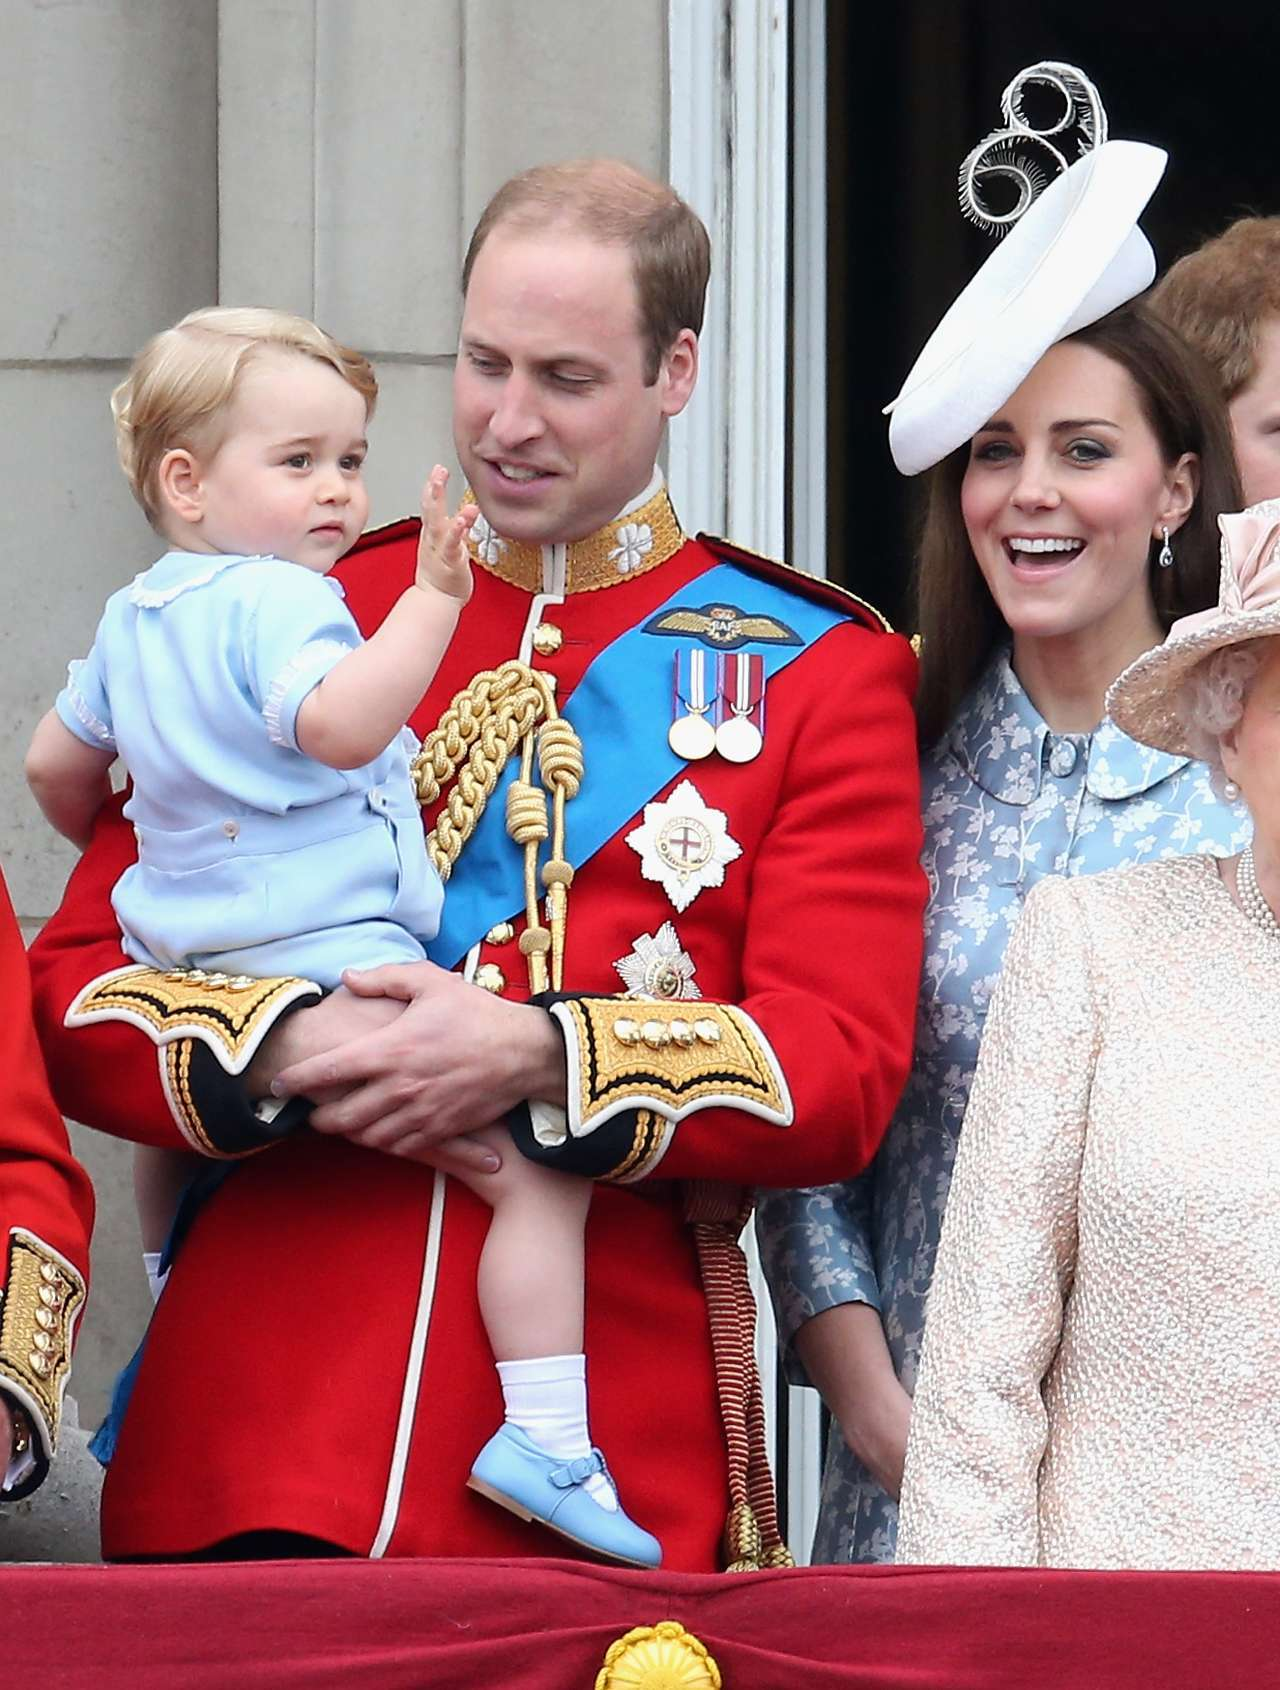 prince-george-gettyImages-477003502